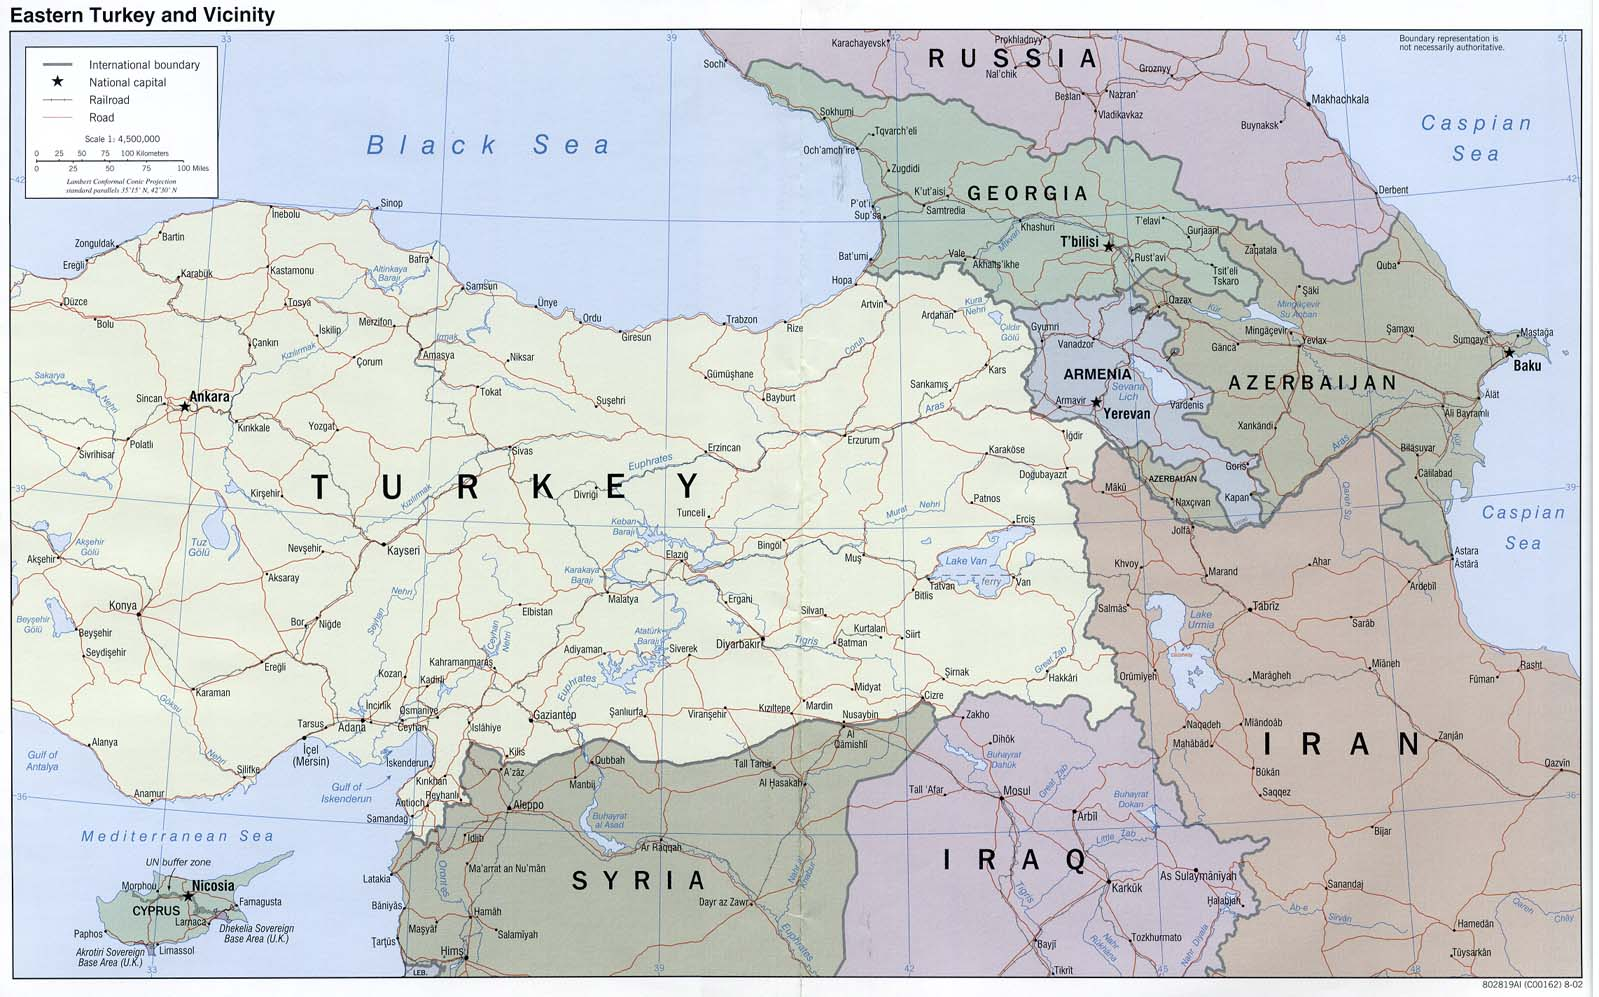 Eastern Turkey and Vicinity Political Map